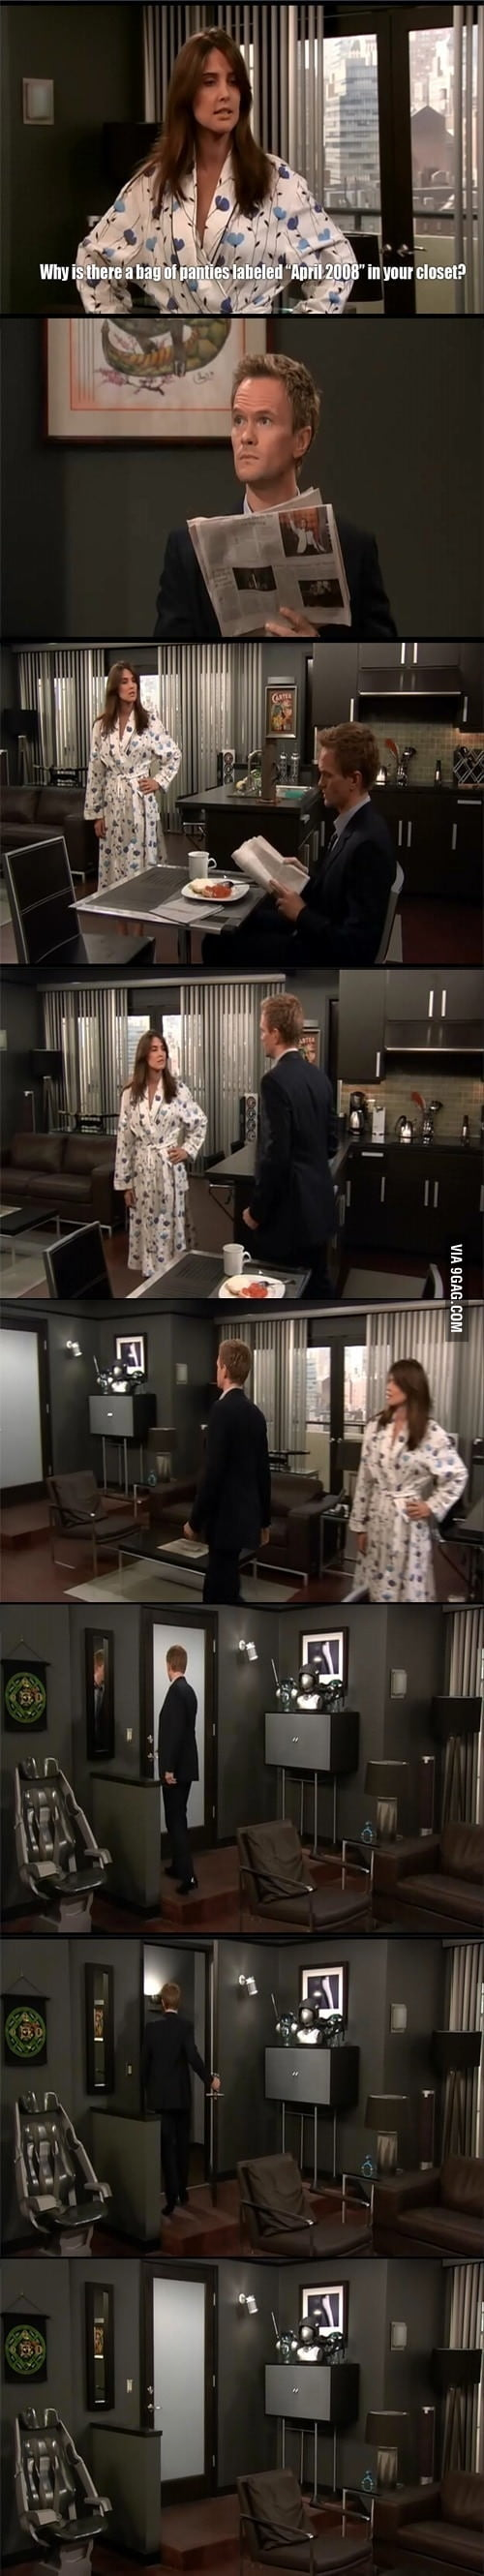 Barney At his Best